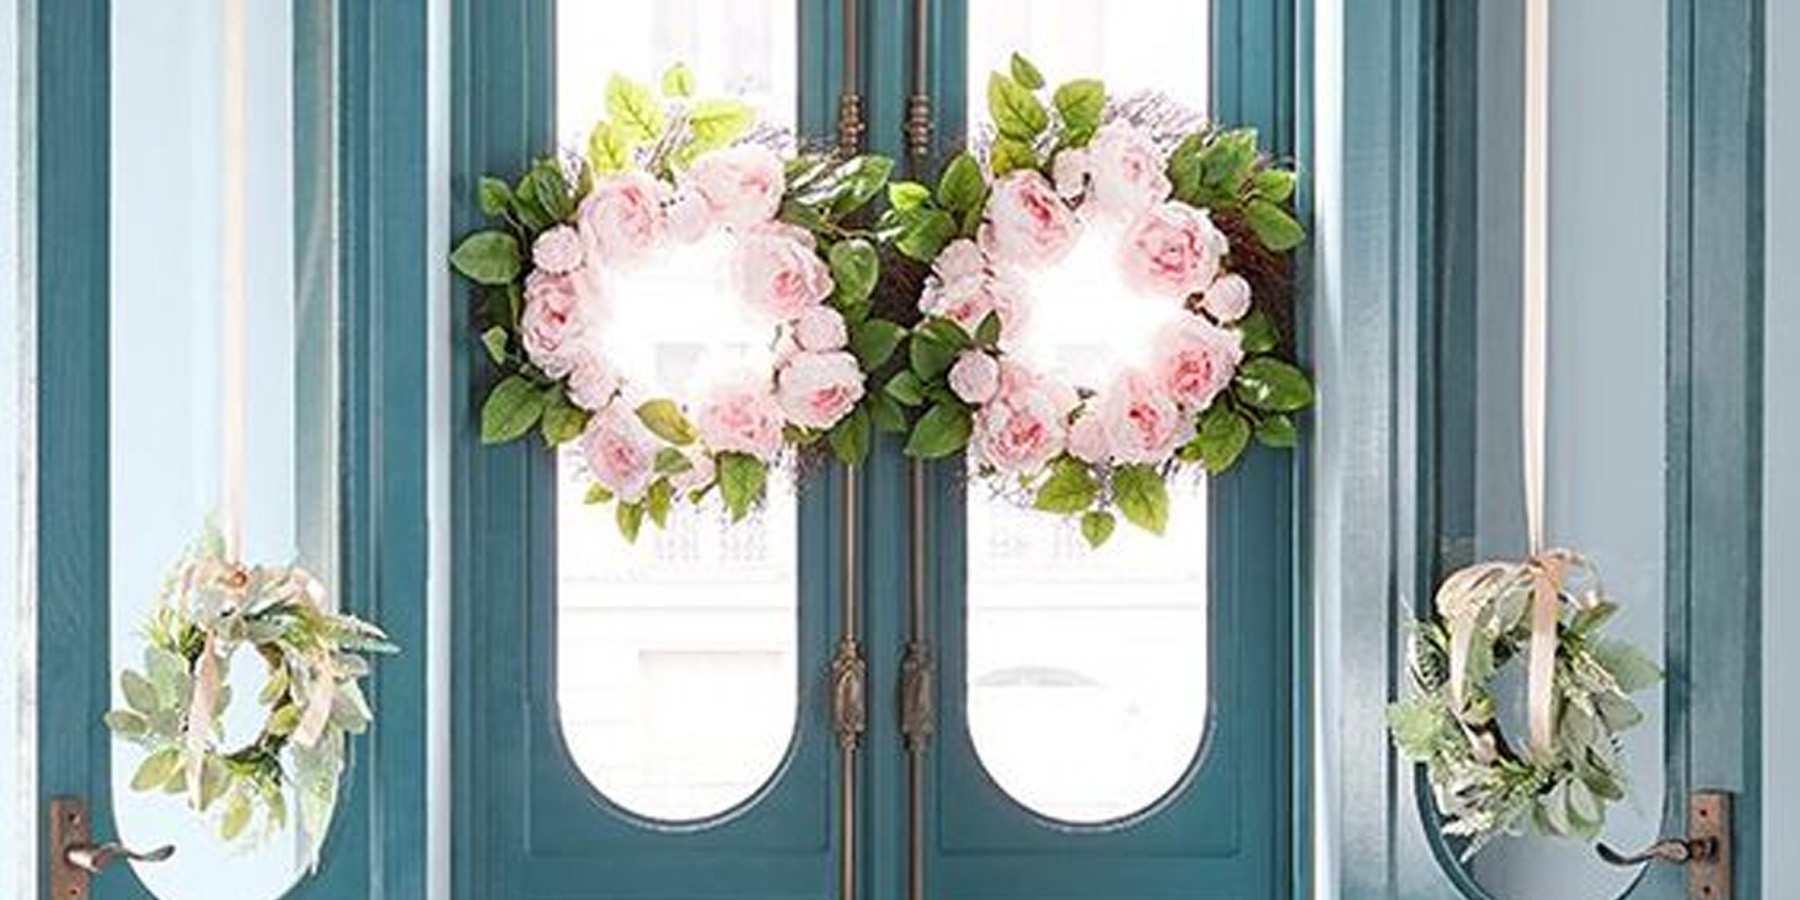 The best spring wreaths to brighten up your front porch under.. - 9to5Toys